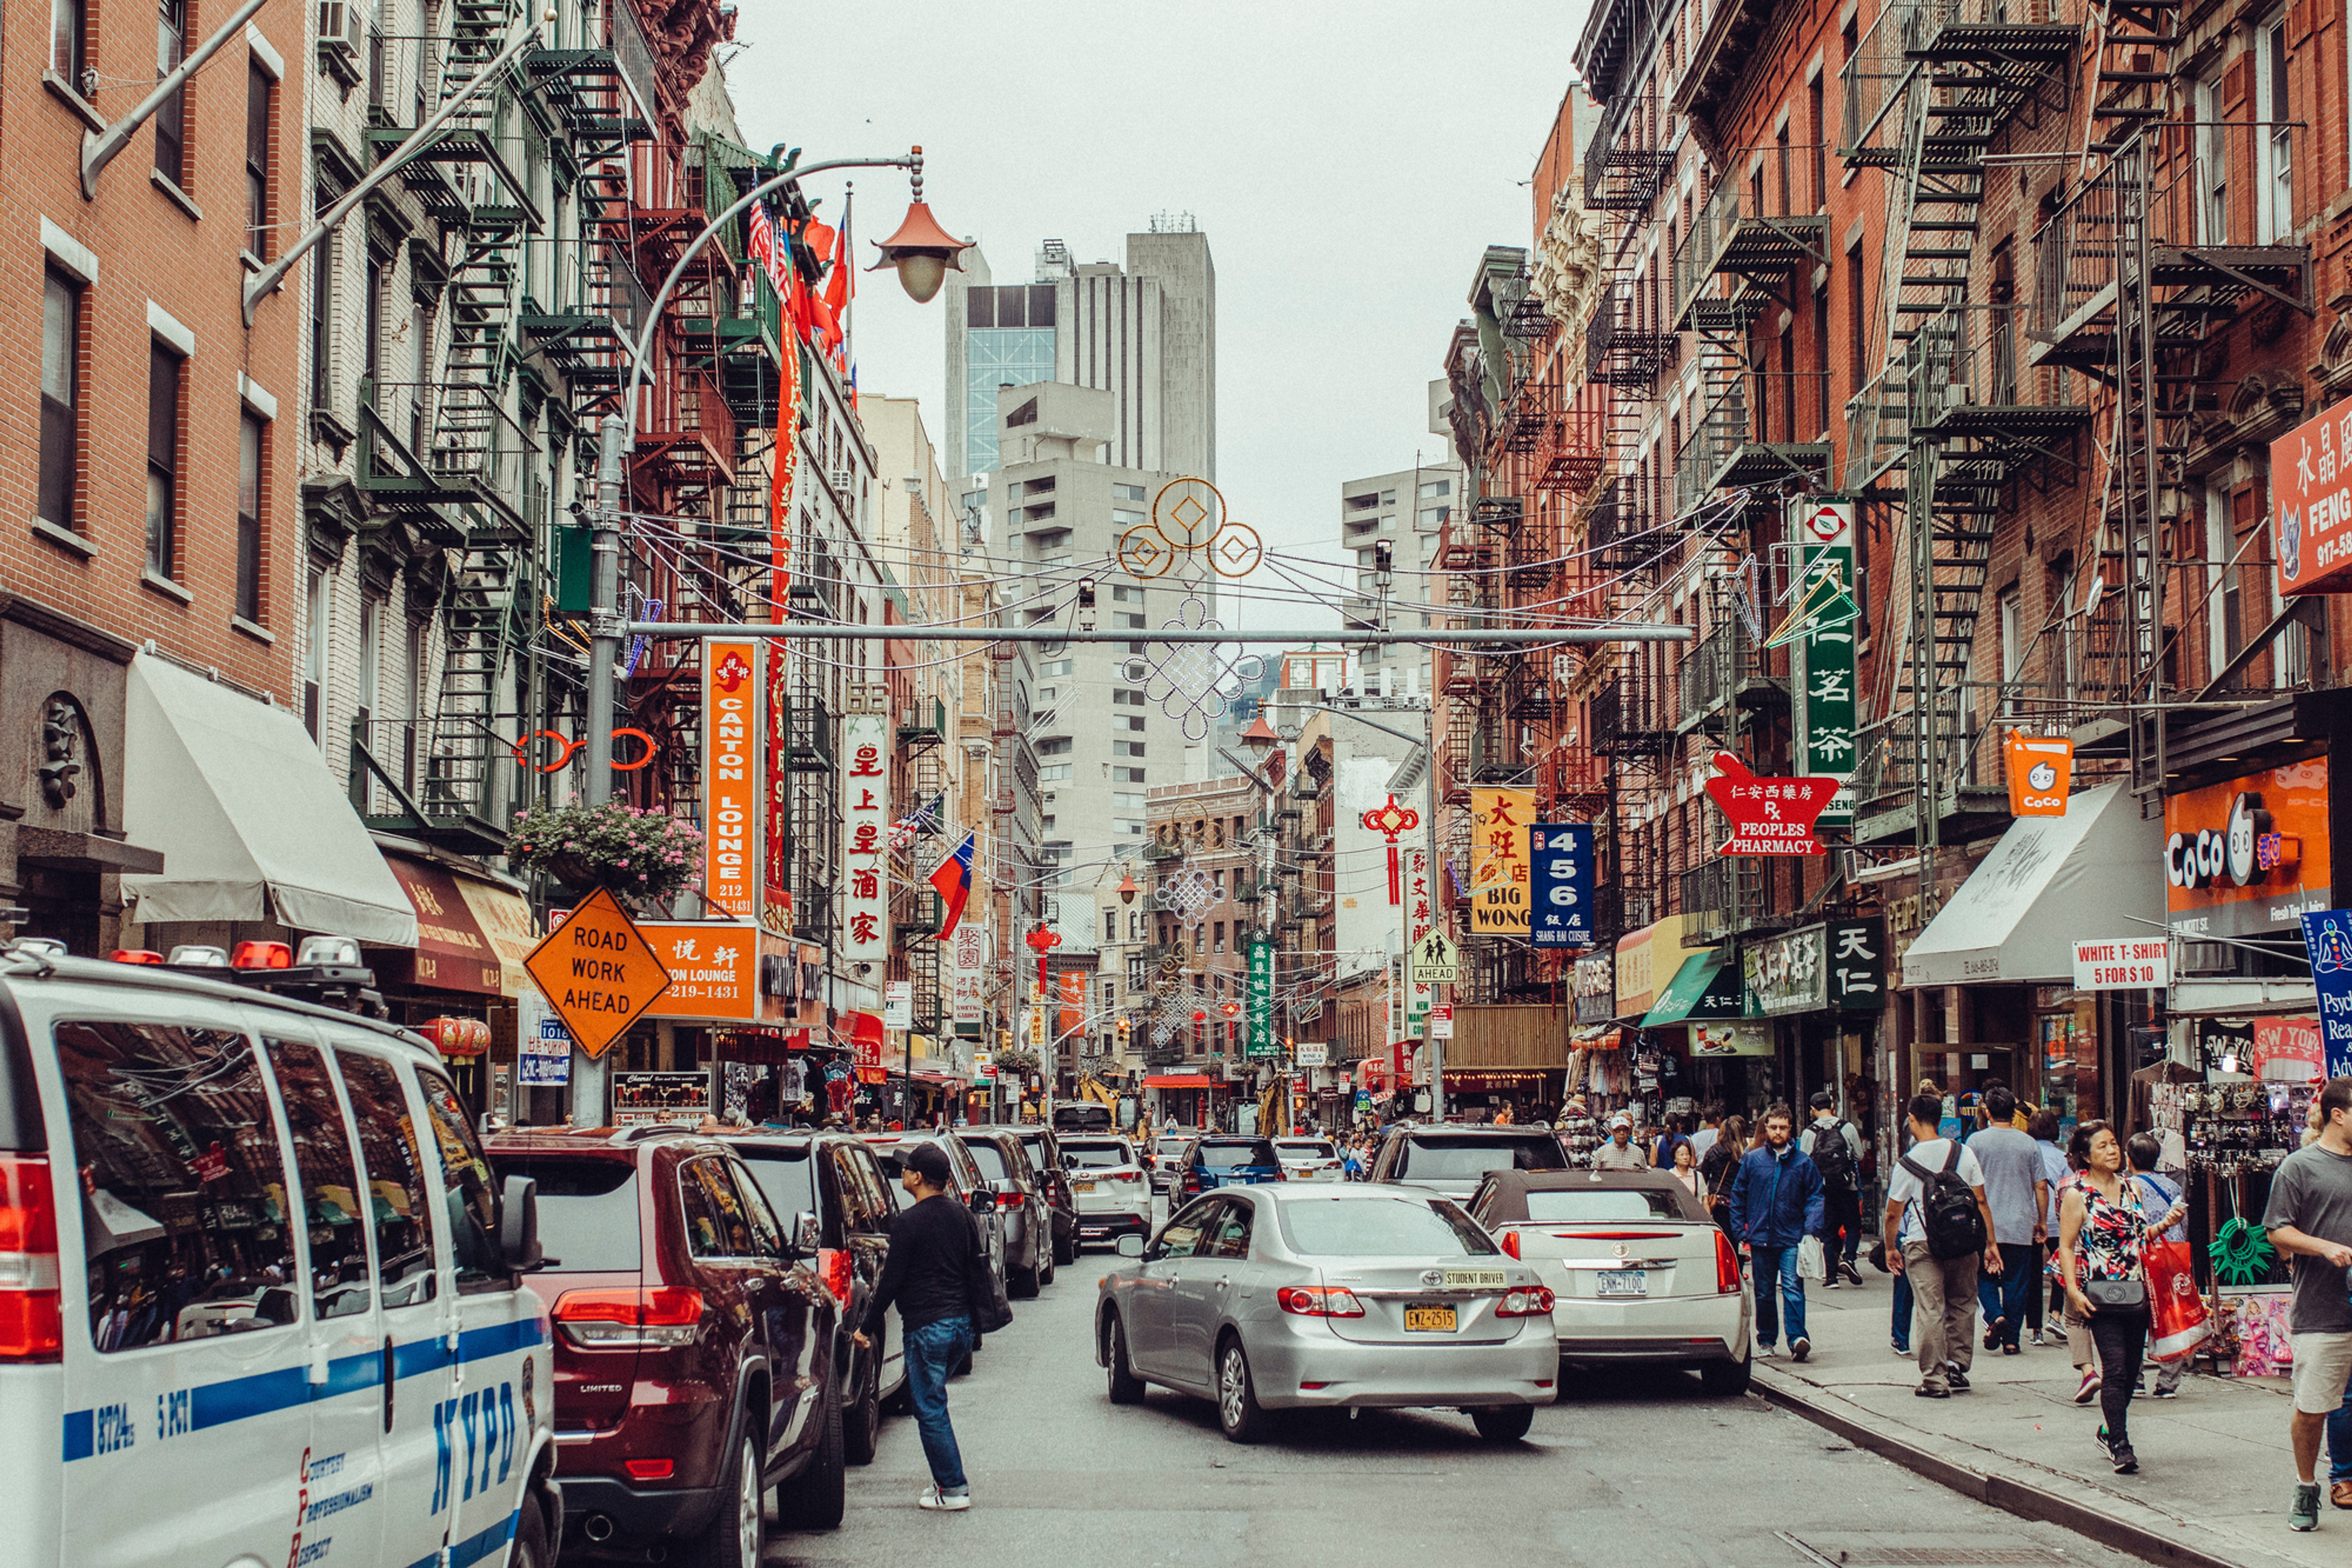 Chinatown and Little Italy Tour